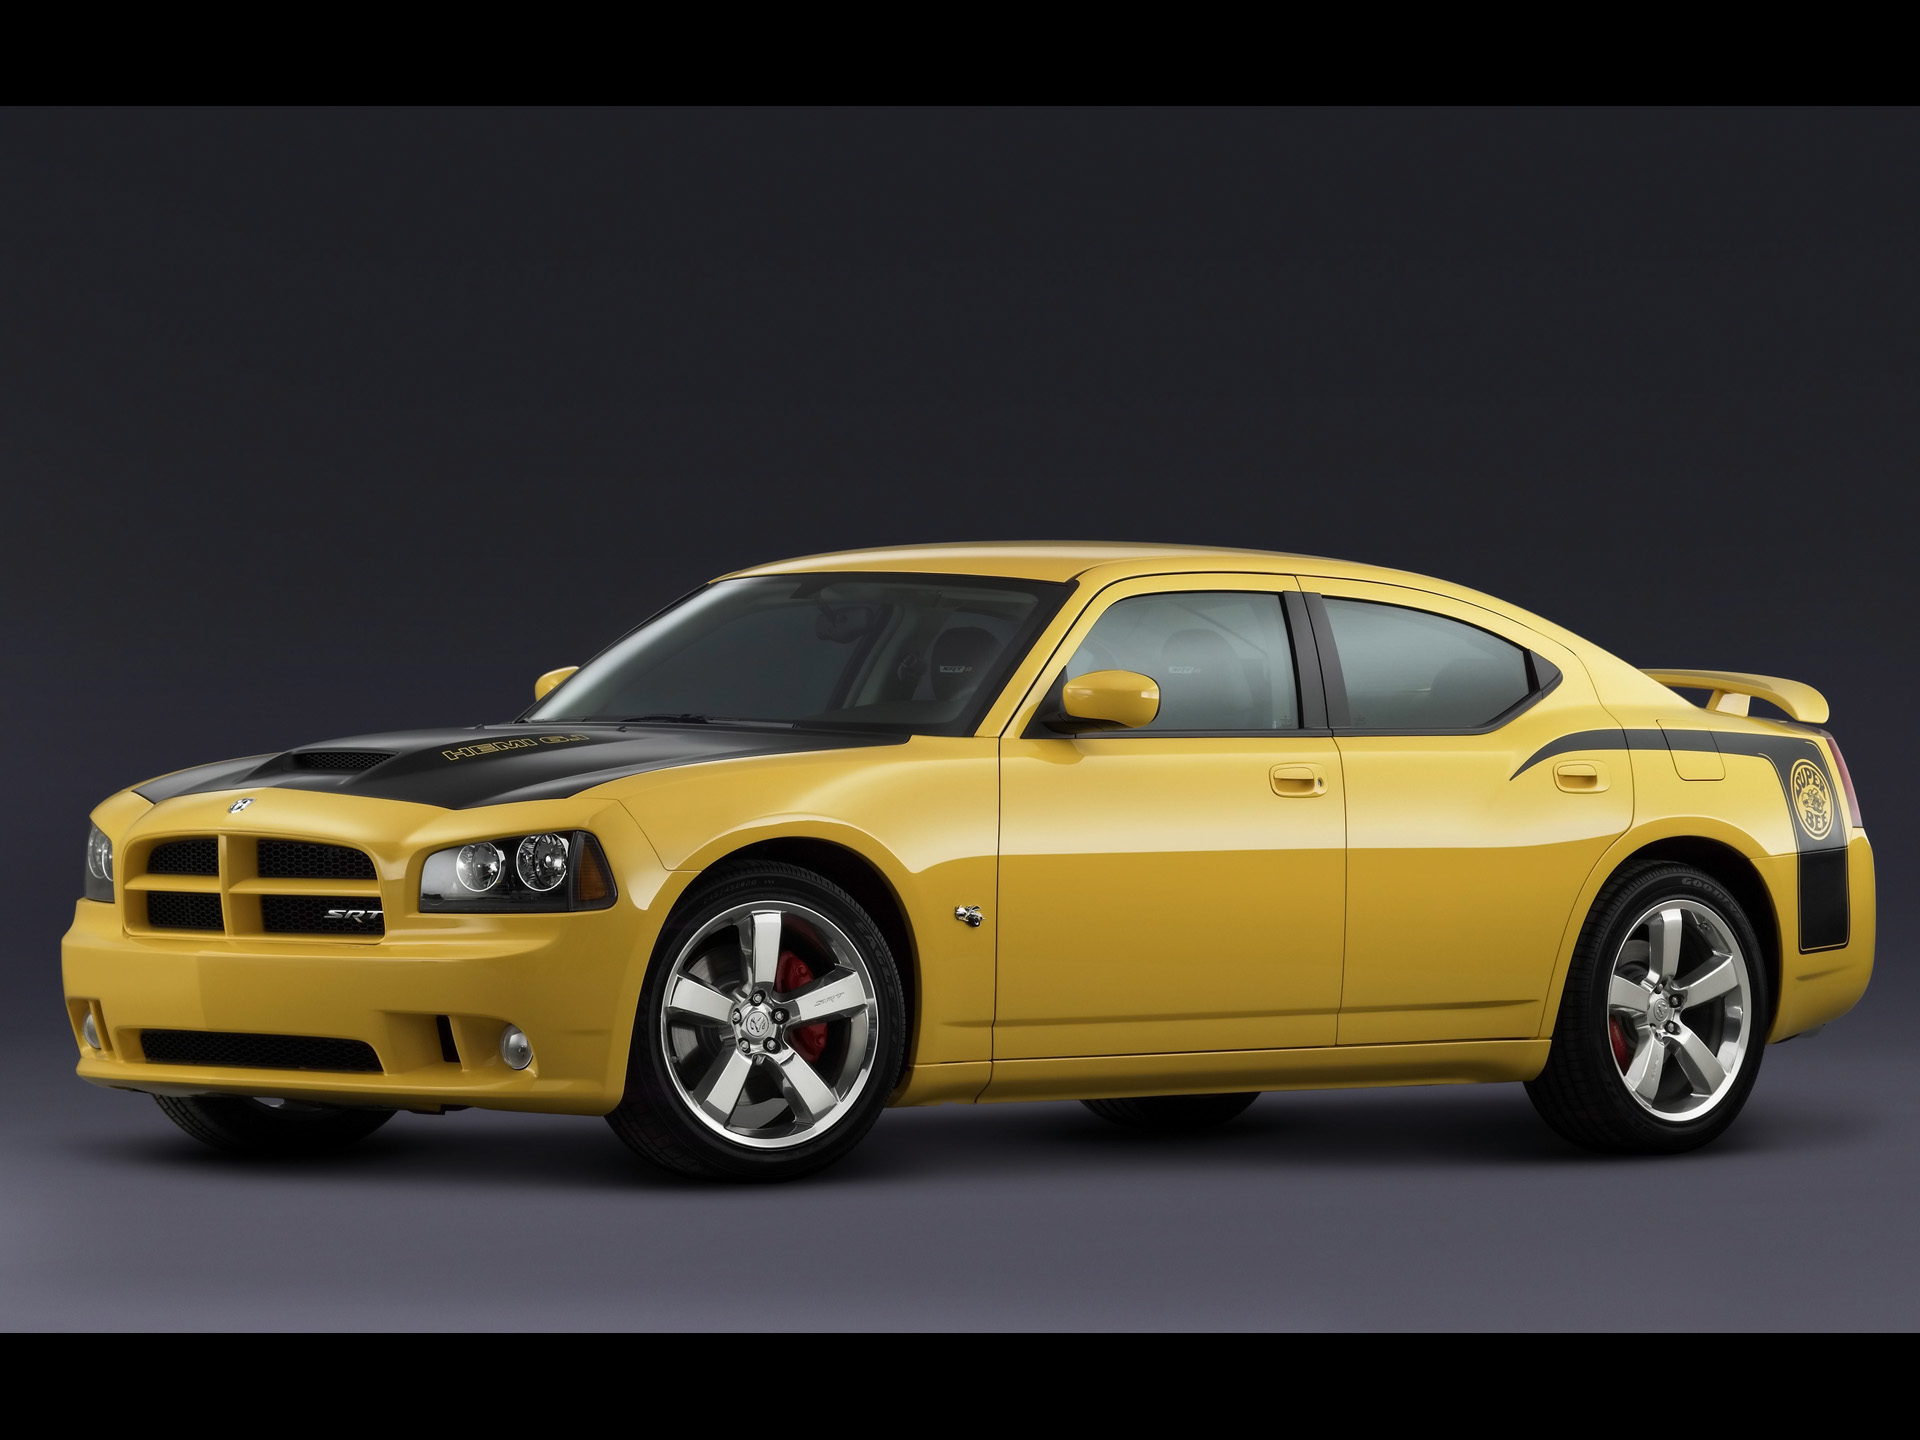 2007 Dodge Charger SRT8 Super Bee History, Pictures, Value, Auction ...